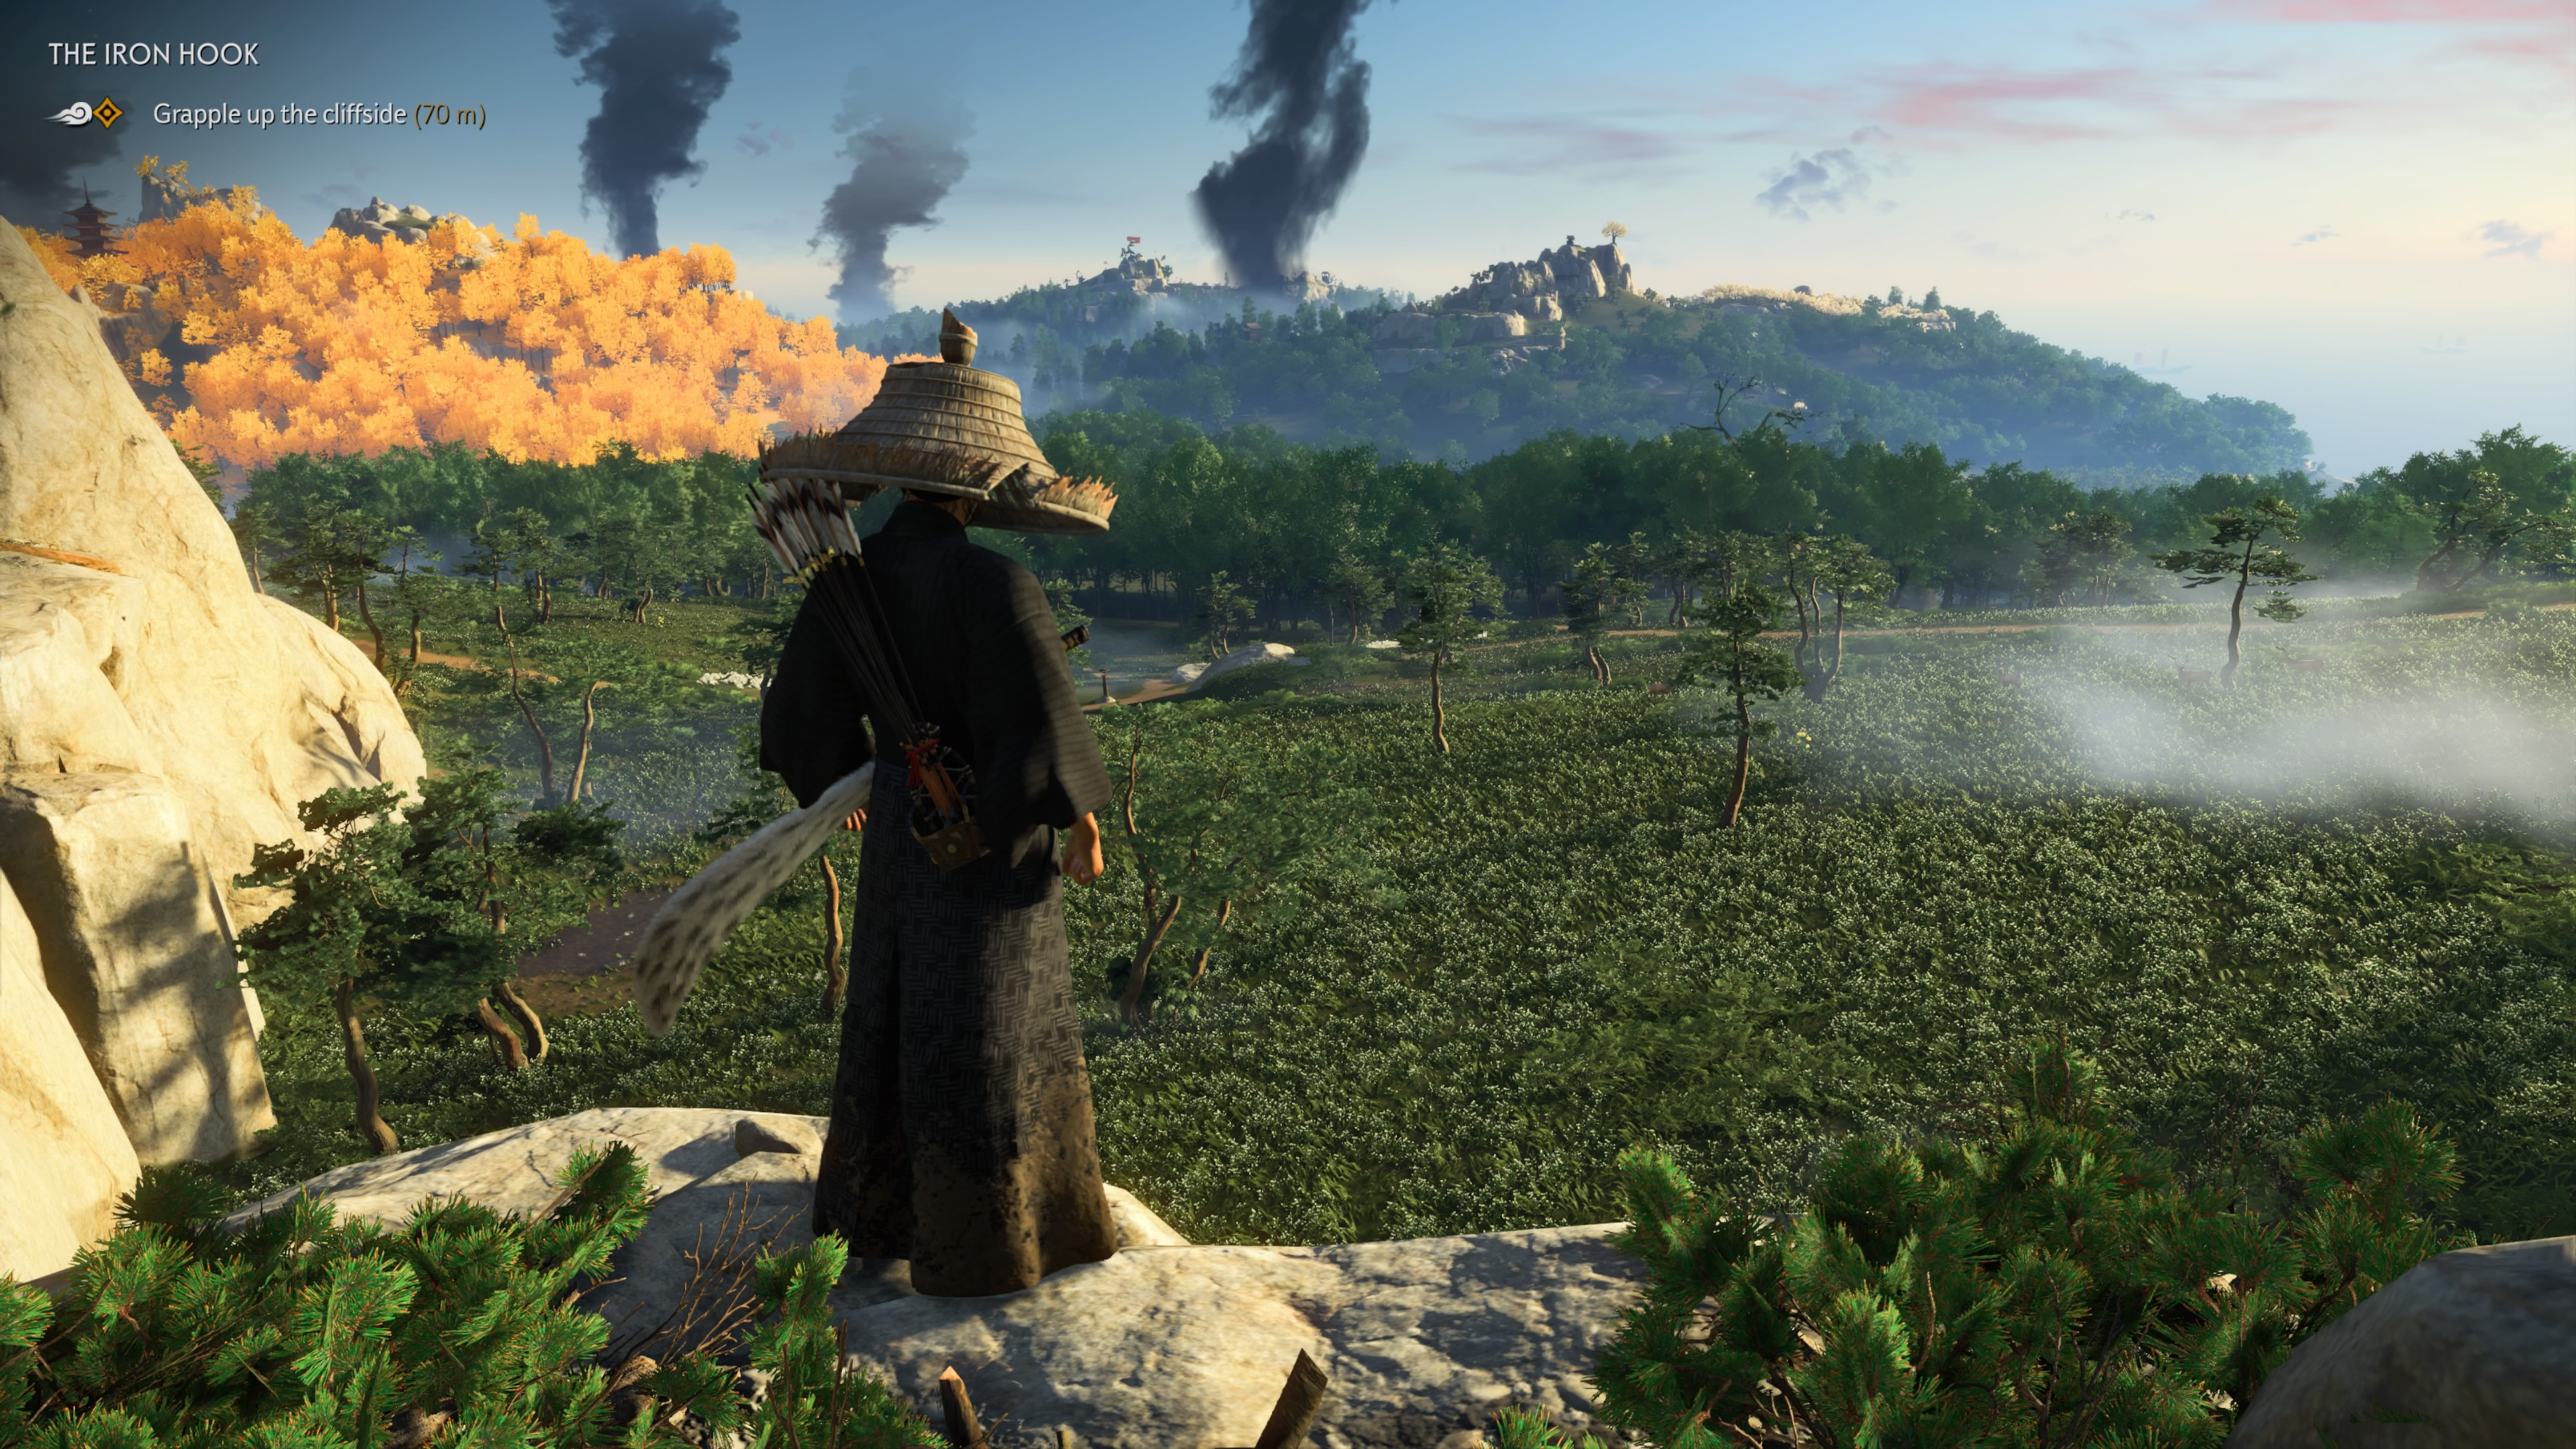 "<em>Ghost of Tsushima</em> is a gorgeous swan song for the PS4.""><img  loading="